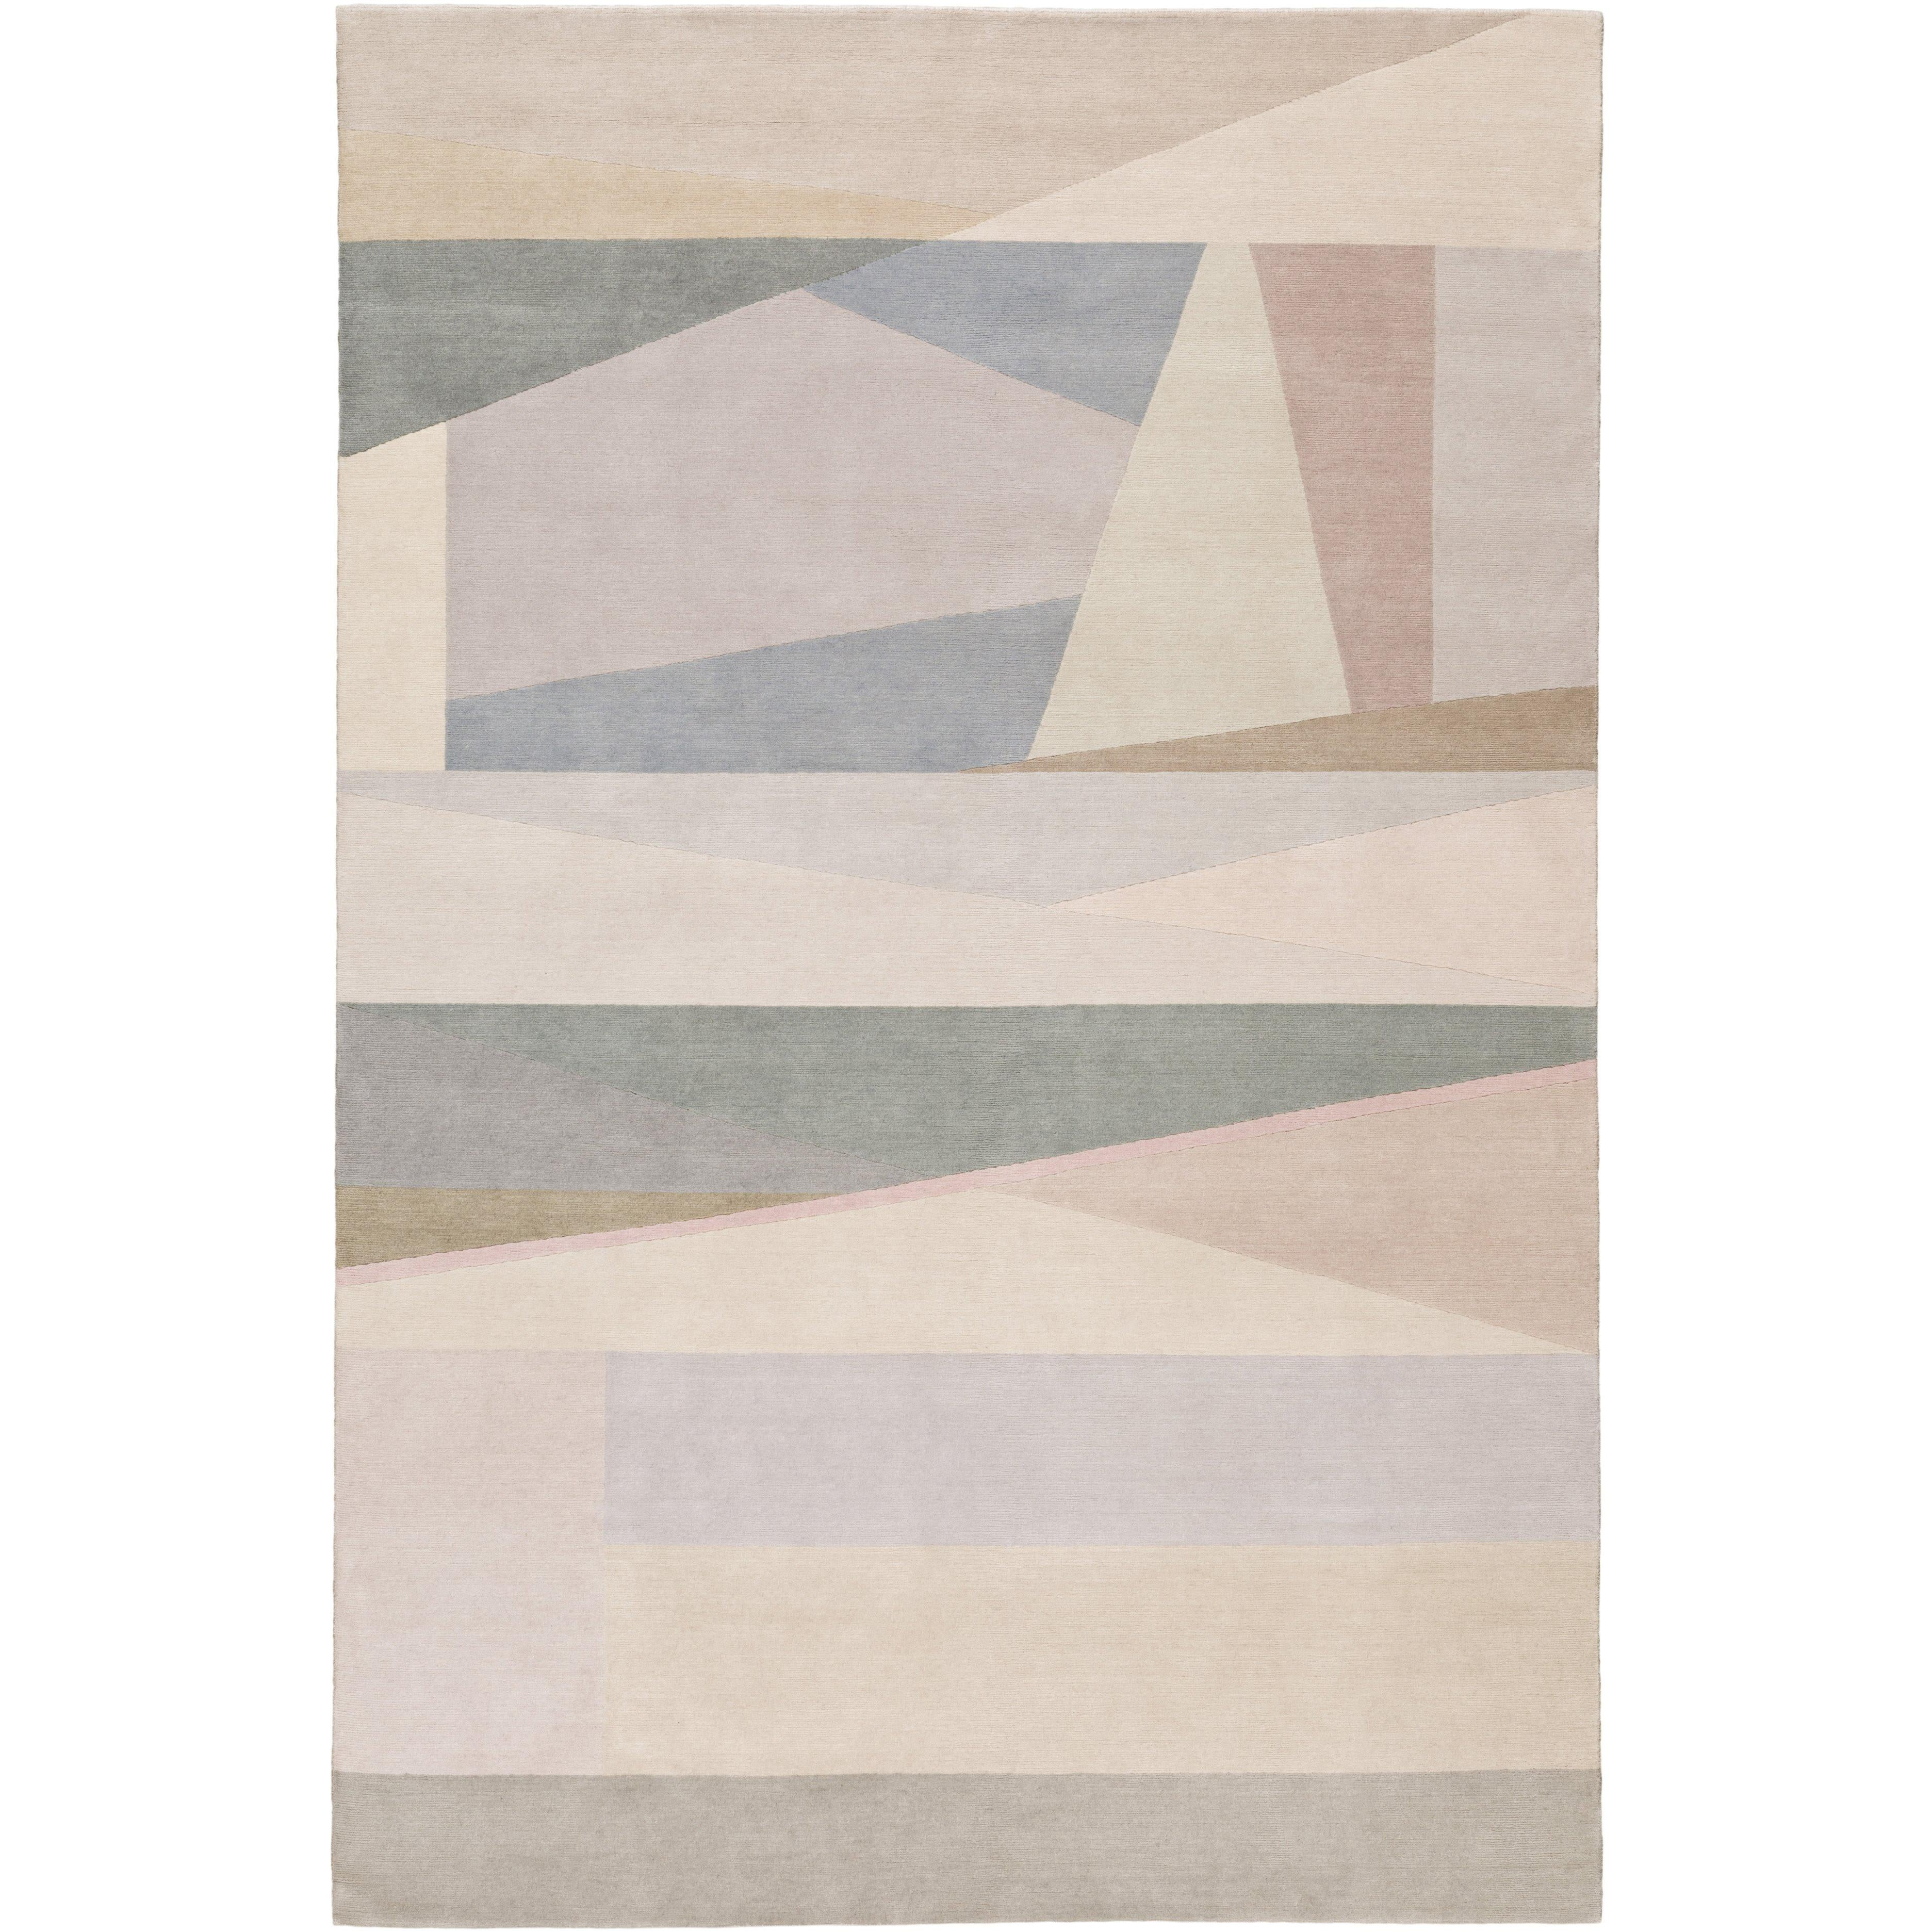 Split Light Hand-Knotted 10x8 Rug in Wool by Paul Smith